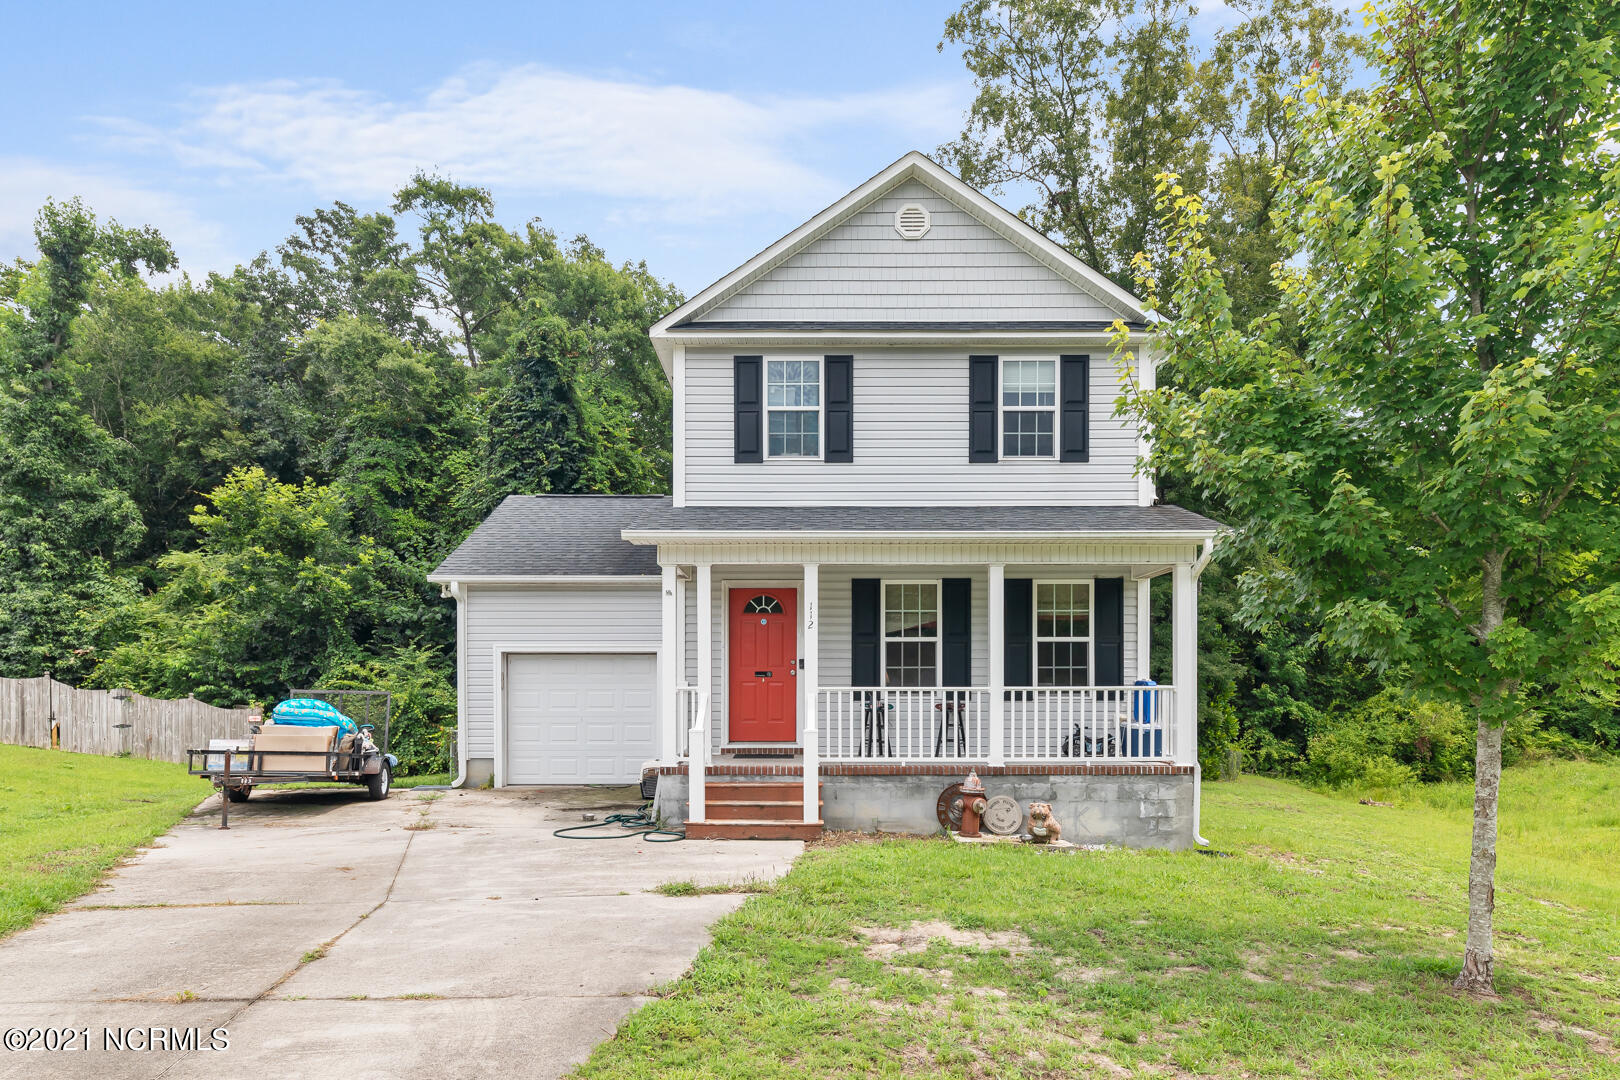 Amazing home located right outside Jacksonville close to Marine Corps Bases and sitting on almost an acre of land.  Schedule your tour today this will not last long!